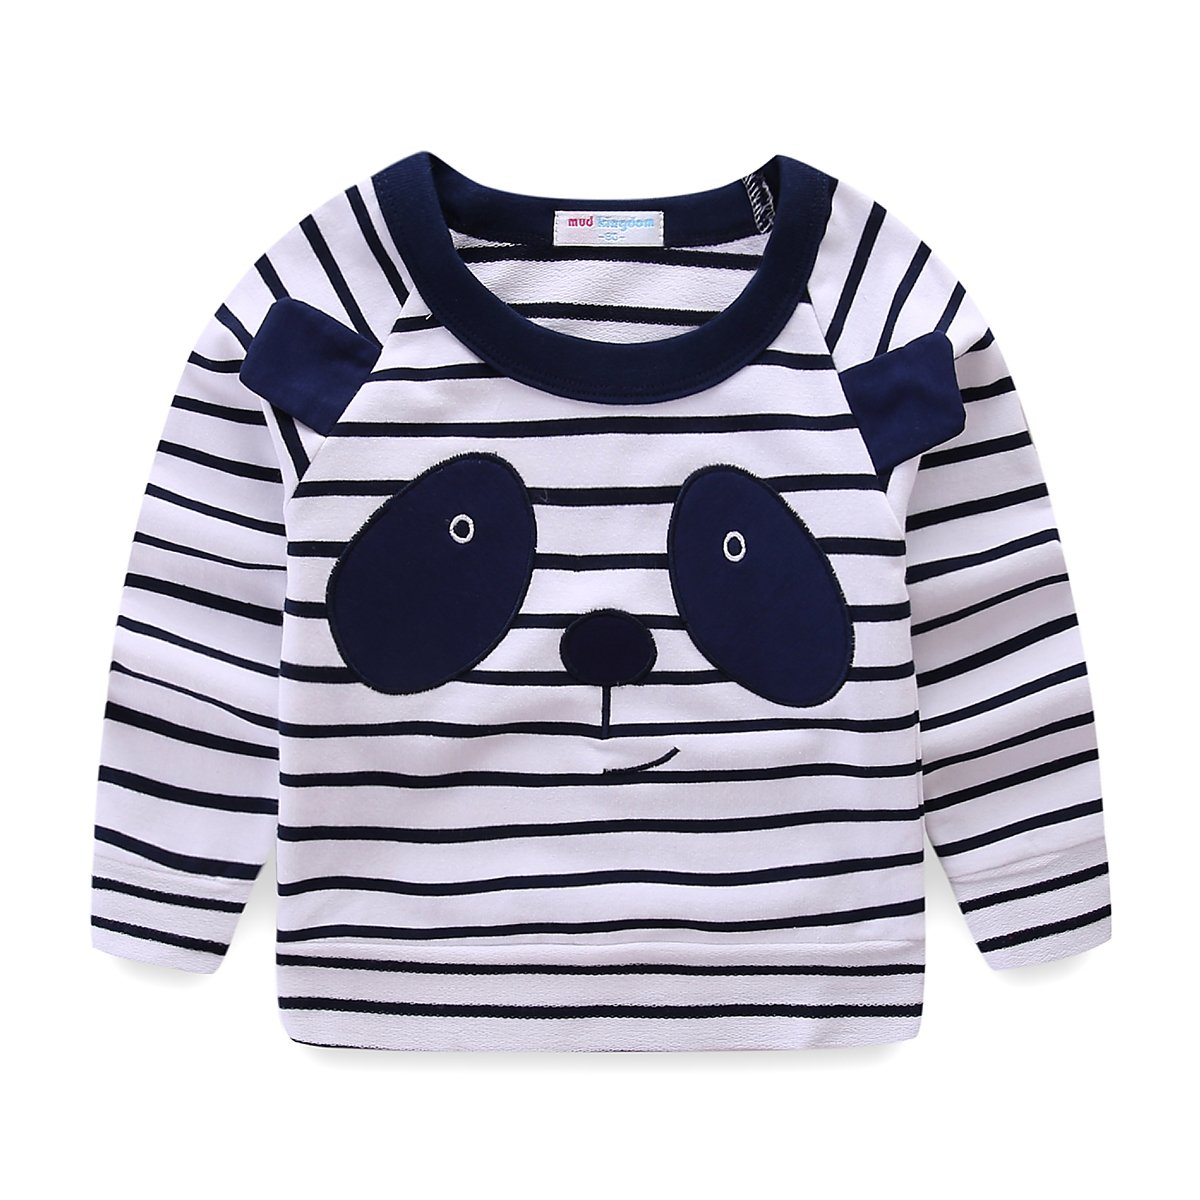 Mud Kingdom Toddler Kids Striped Panda Costume Sweater S-S0202